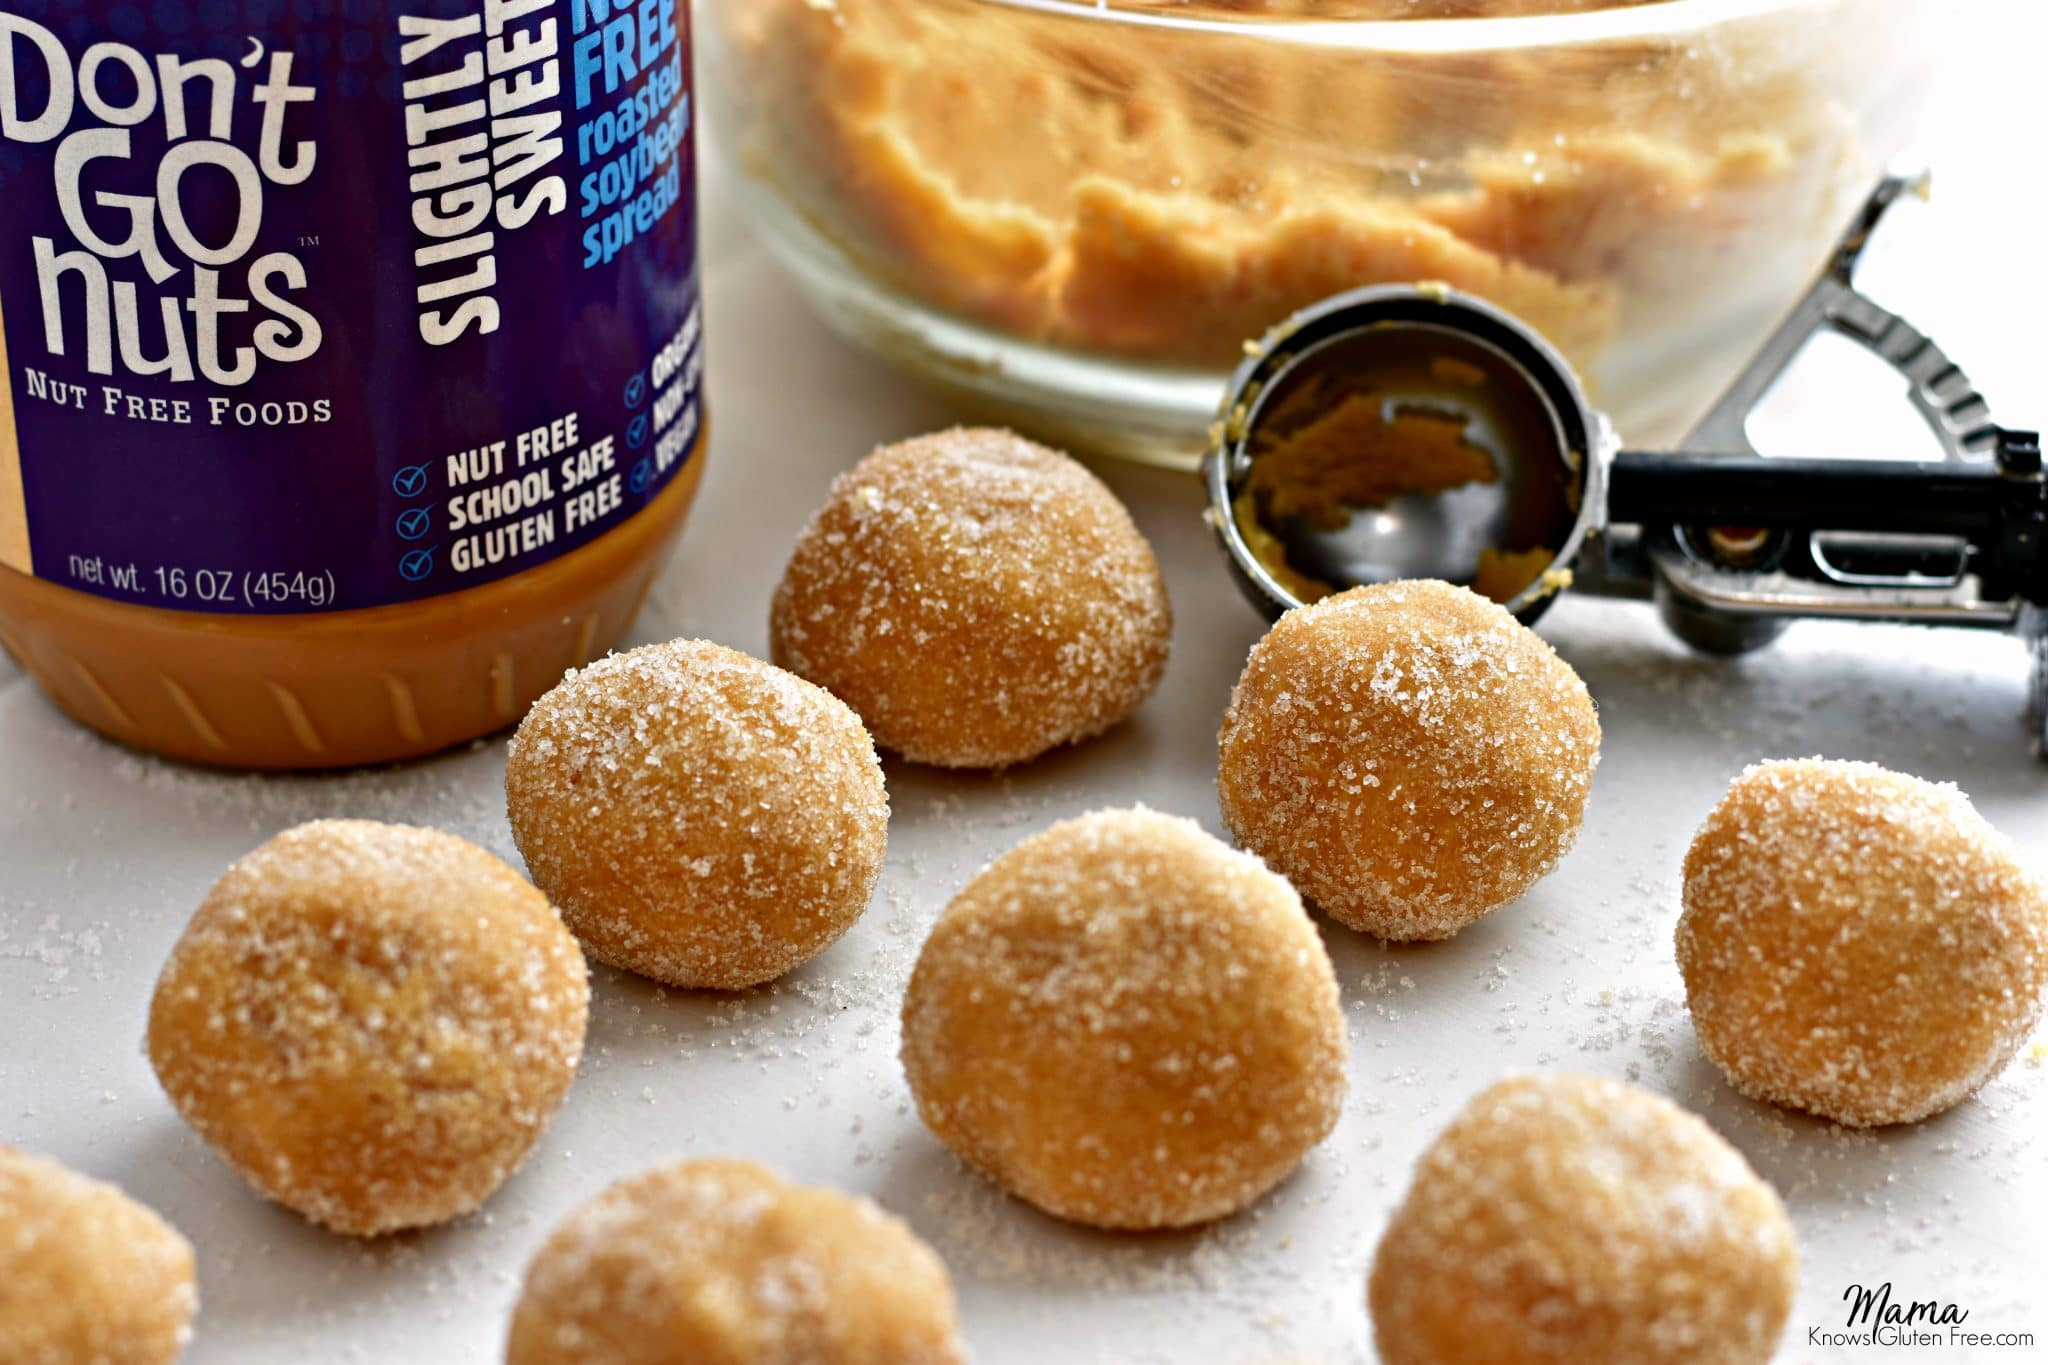 Gluten-Free Soy Butter Thumbprint Cookies balls, cookie scoop, cookie batter in a bowl and a jar of Don't Go Nuts soy butter.